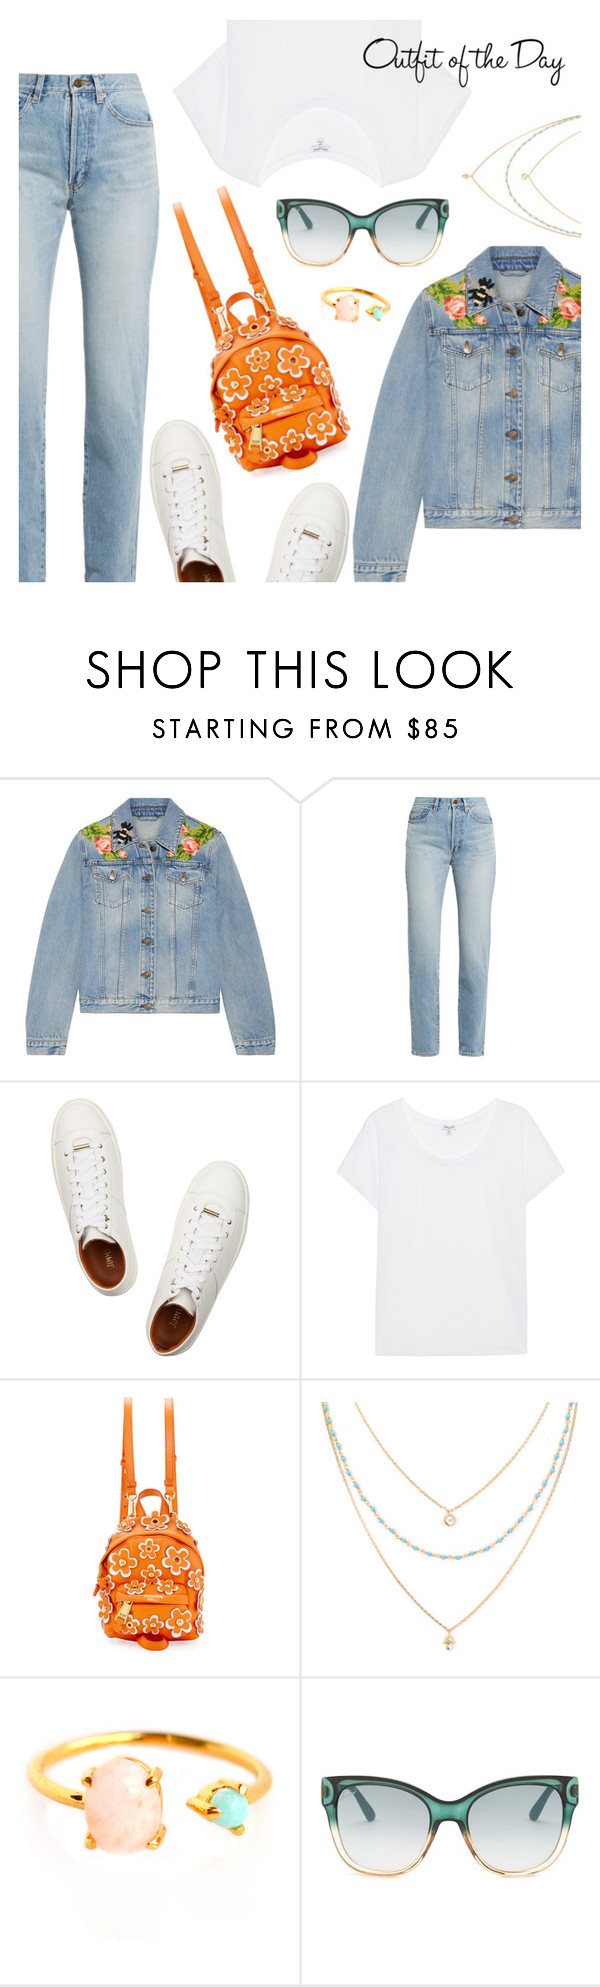 """""""Casual"""" by dressedbyrose ❤ liked on Polyvore featuring Gucci, Yves Saint Laurent, Jimmy Choo, Splendid, Moschino, Petit Bateau, casual and polyvoreeditorial"""